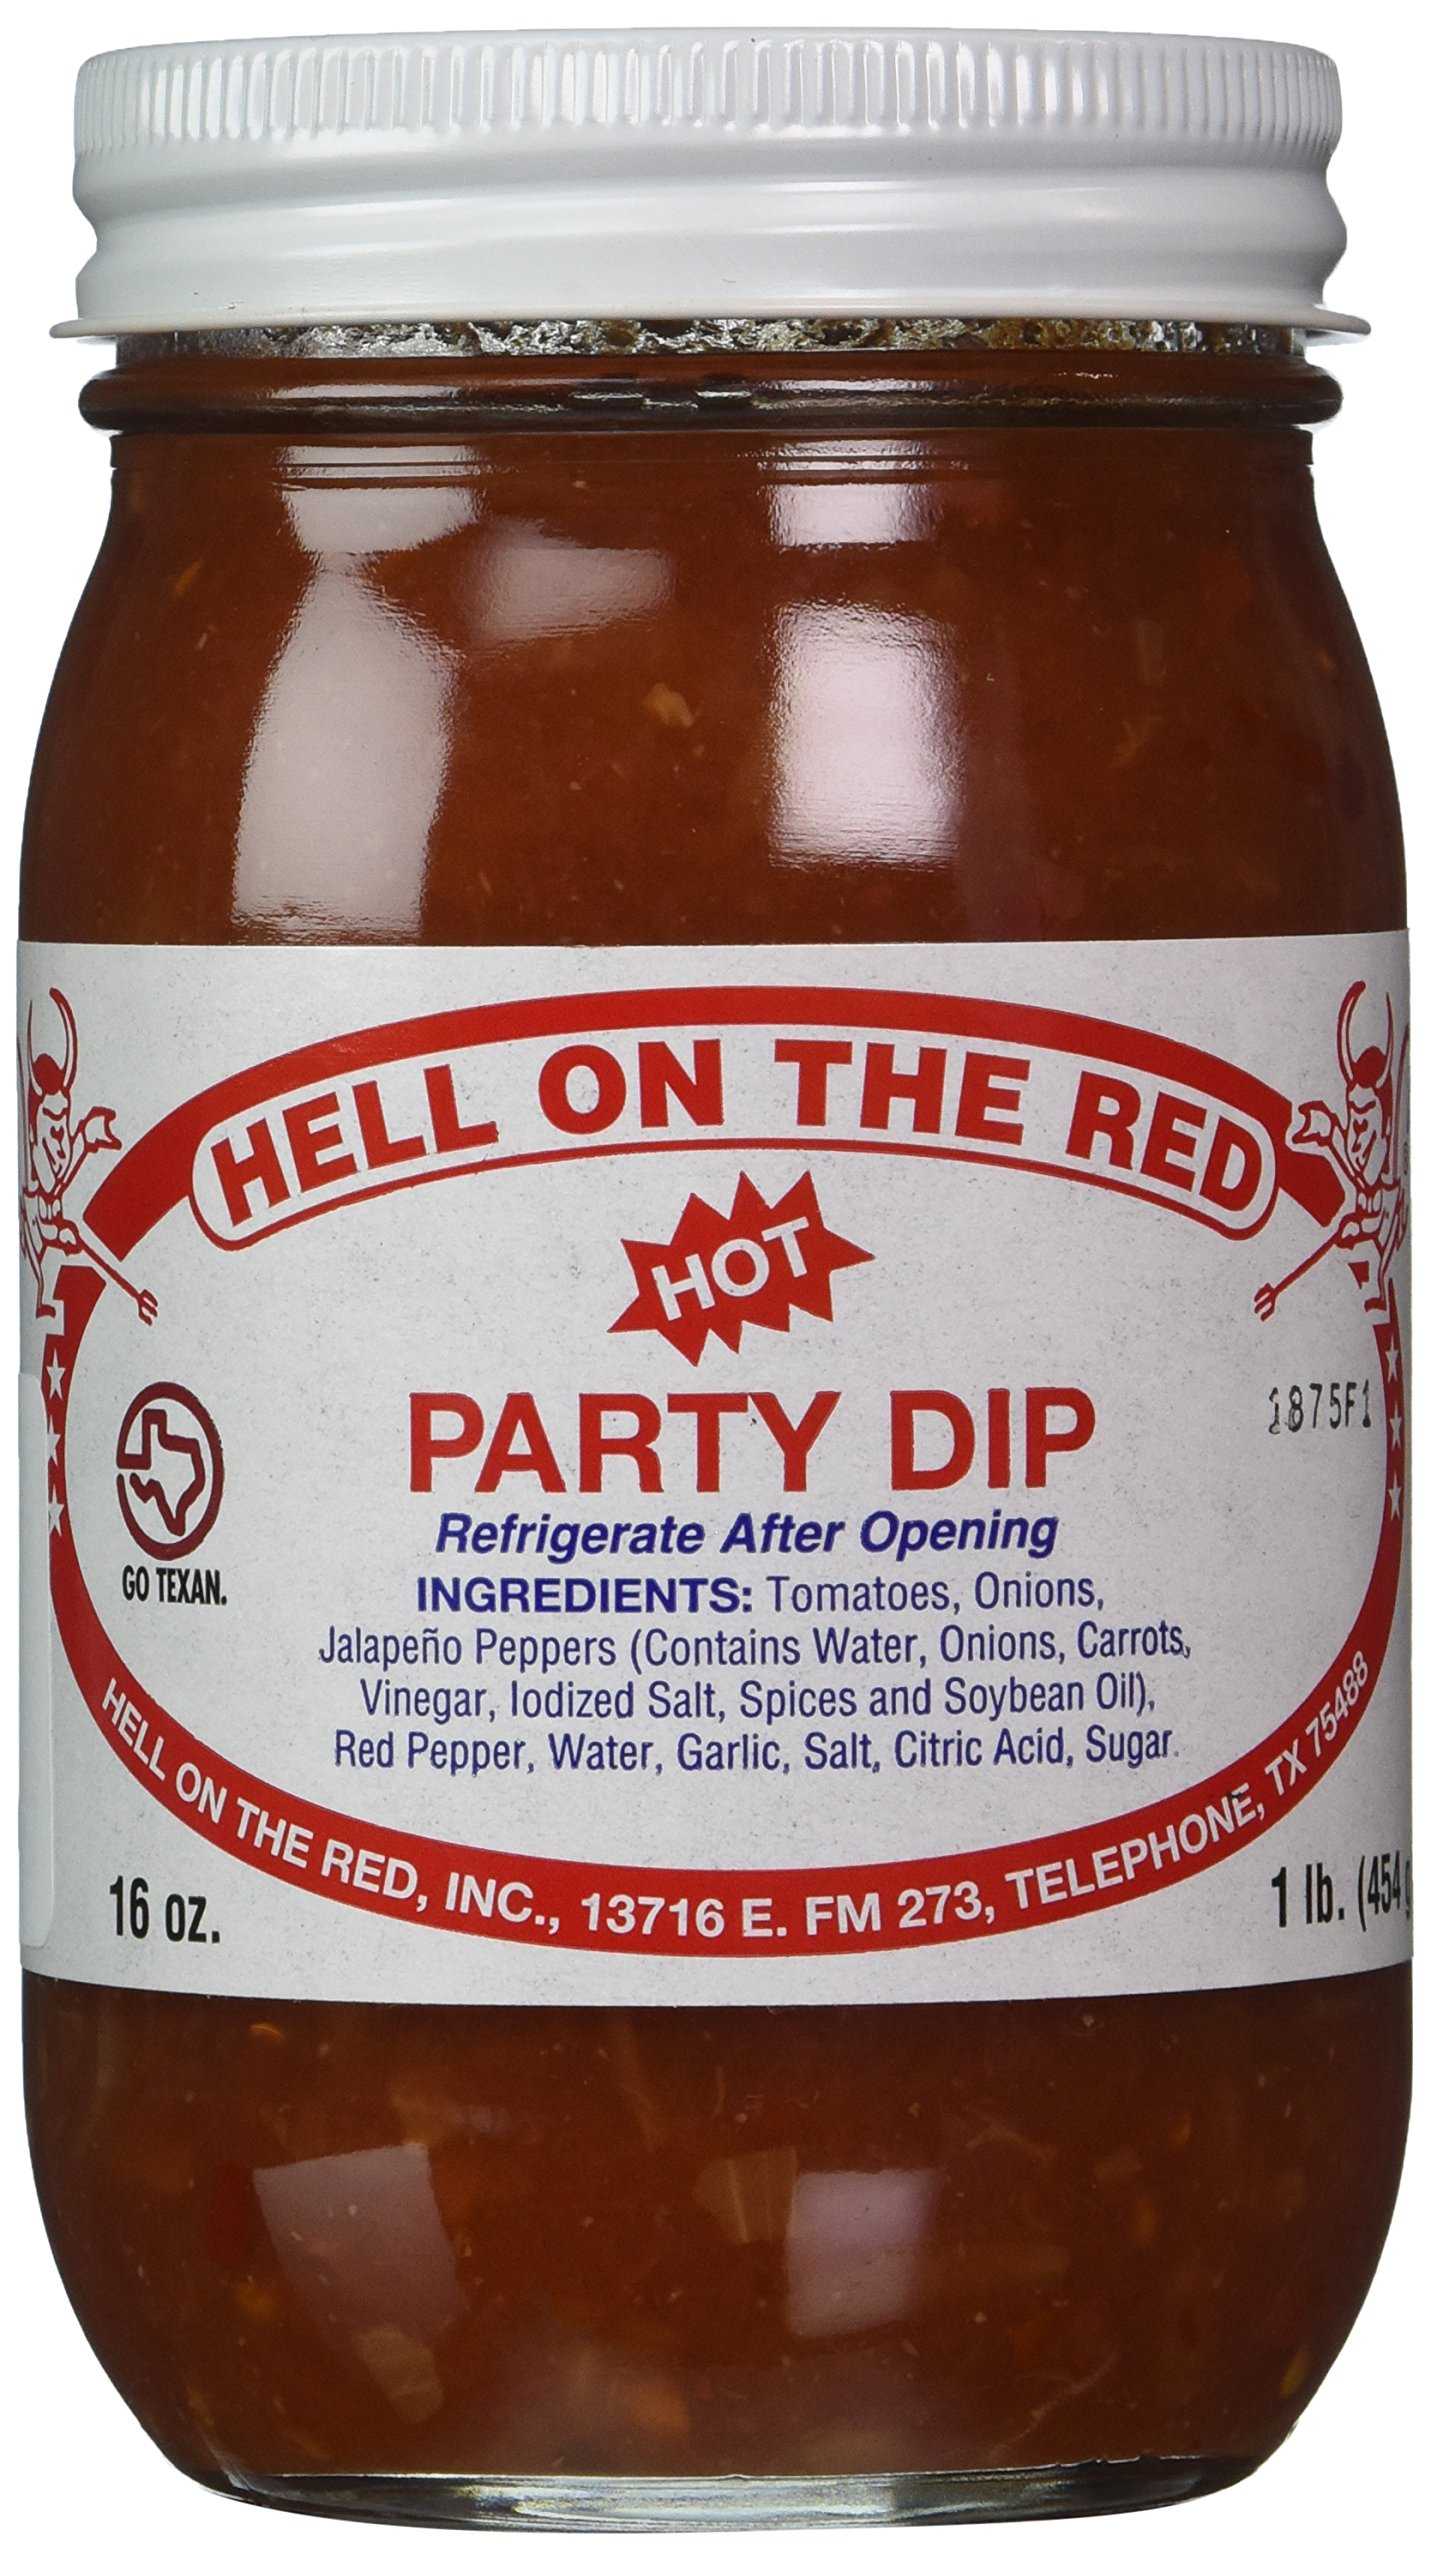 Hell On The Red, Authentic Texas Hot Party Dip, 16 Ounces (Pack of 2) by Hell on the Red (Image #1)